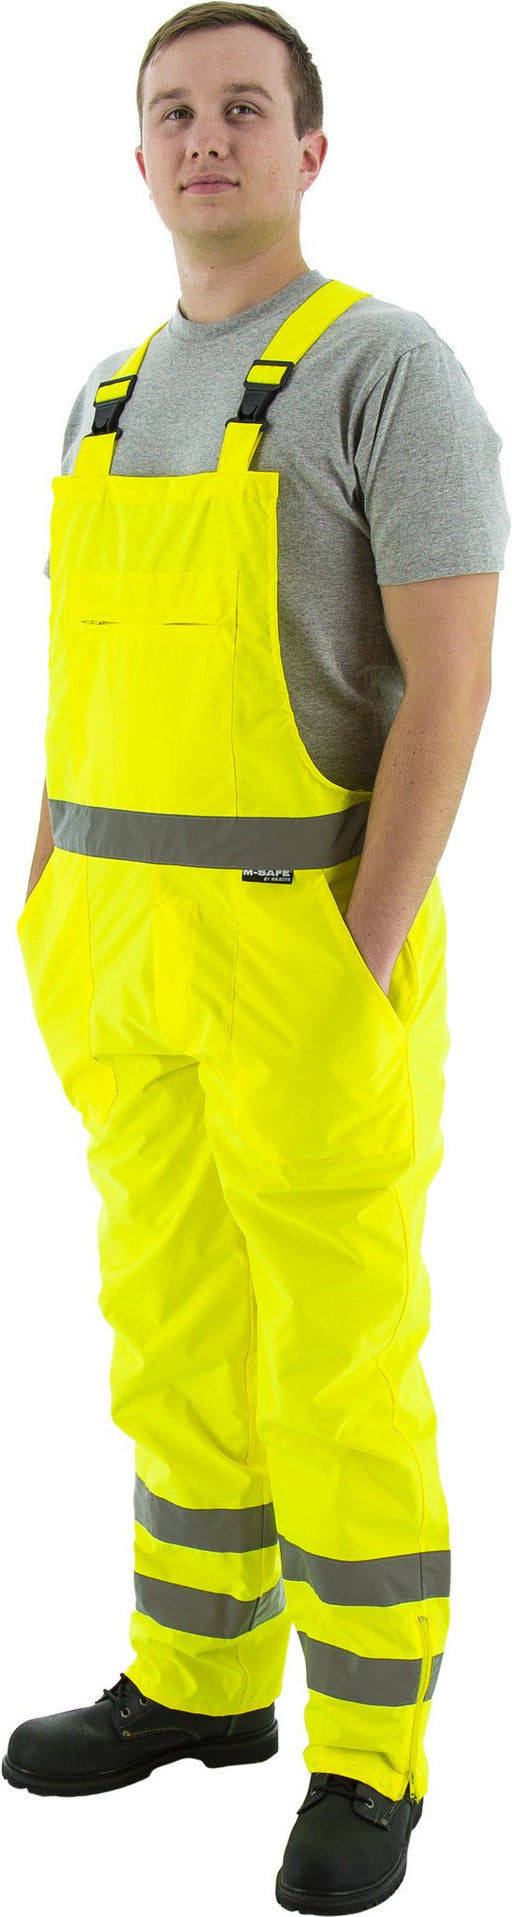 Majestic 75-2353 Hi Vis Yellow ANSI Class E Rain Bibs Inside Coating: Global Construction Supply